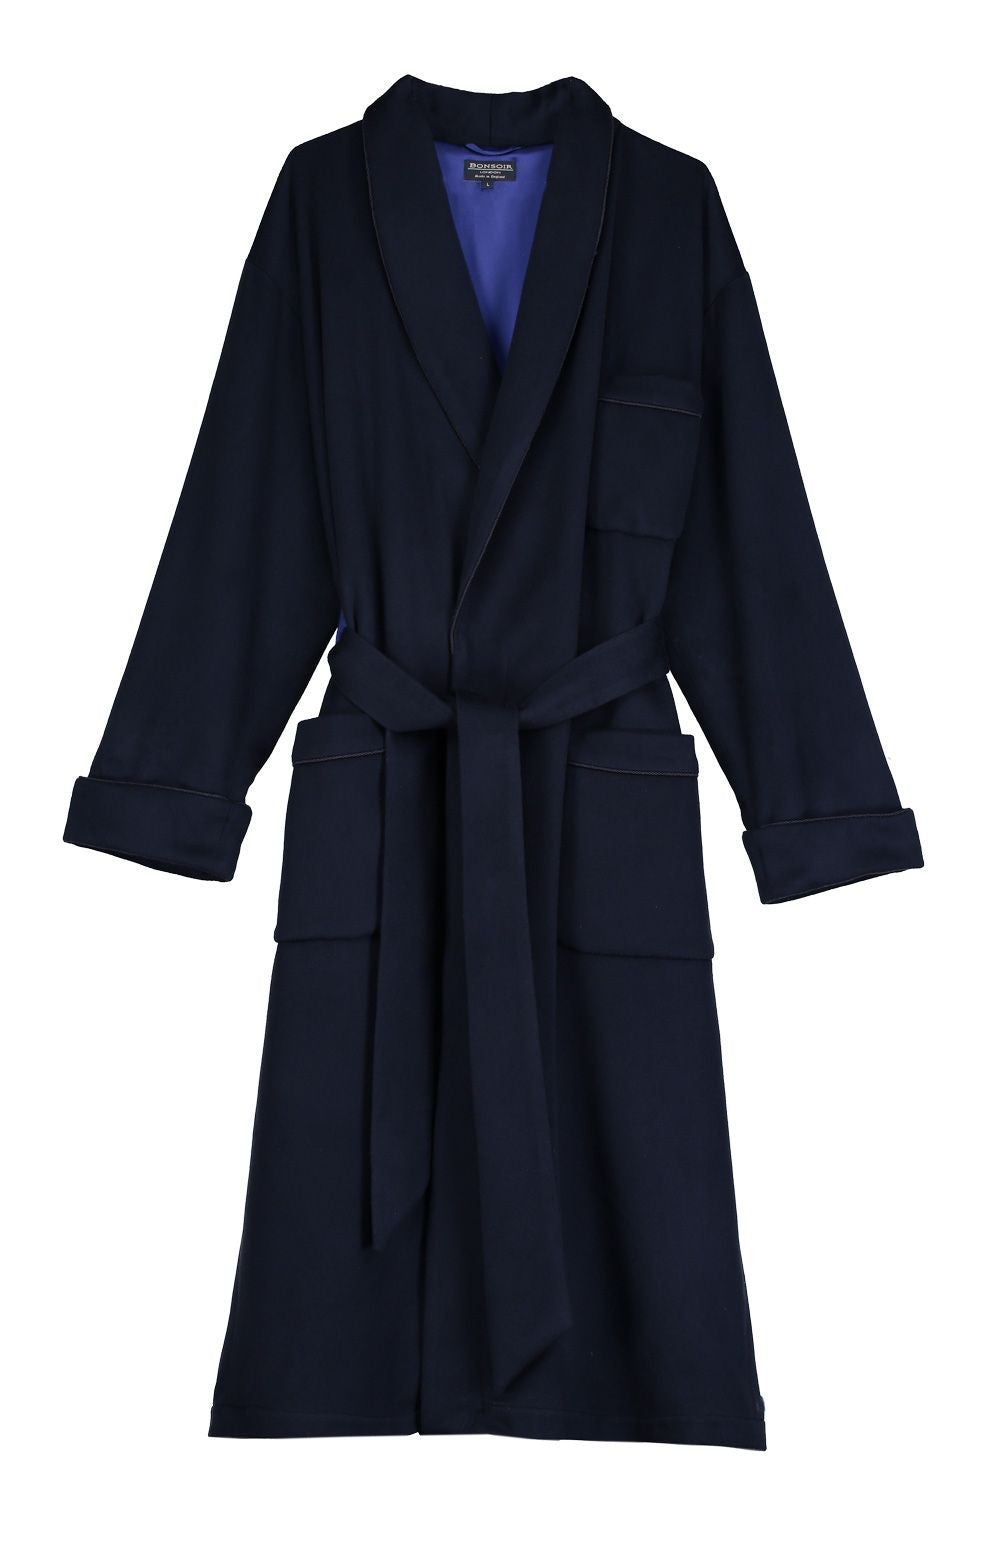 SILK LINED CASHMERE ROBE - NAVY